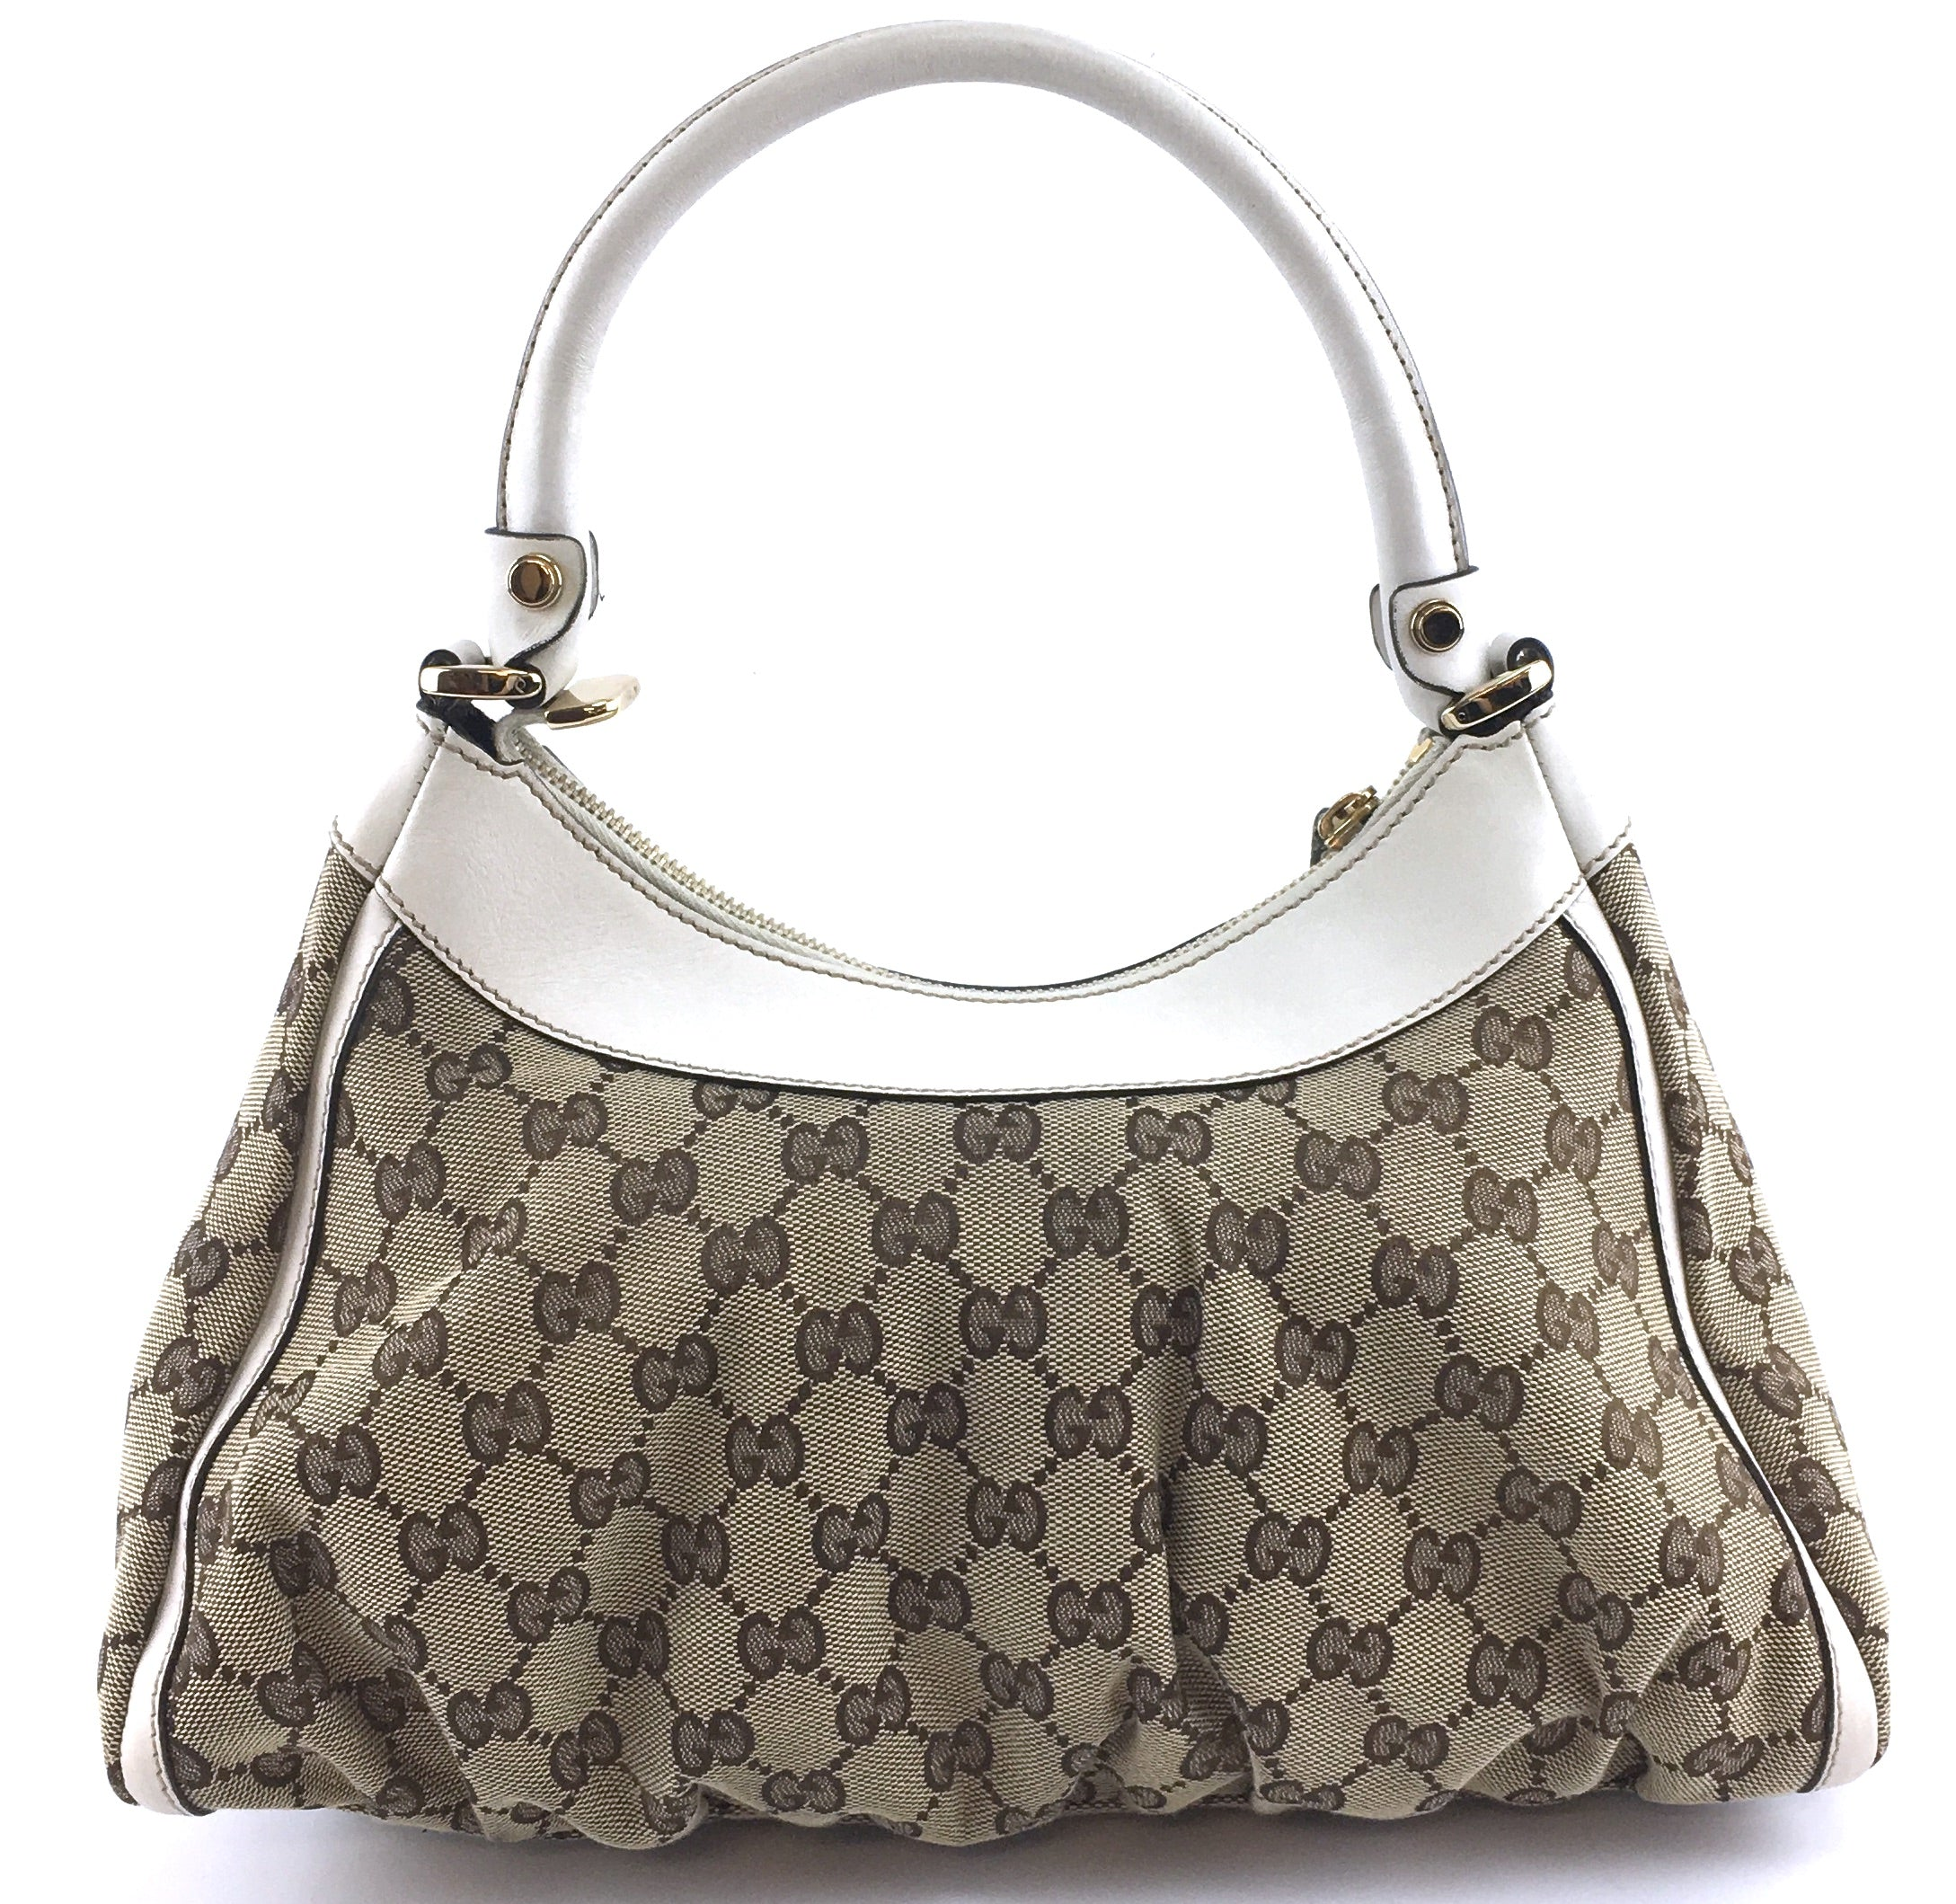 Gucci Guccissima GG Logo Beige Canvas and Leather